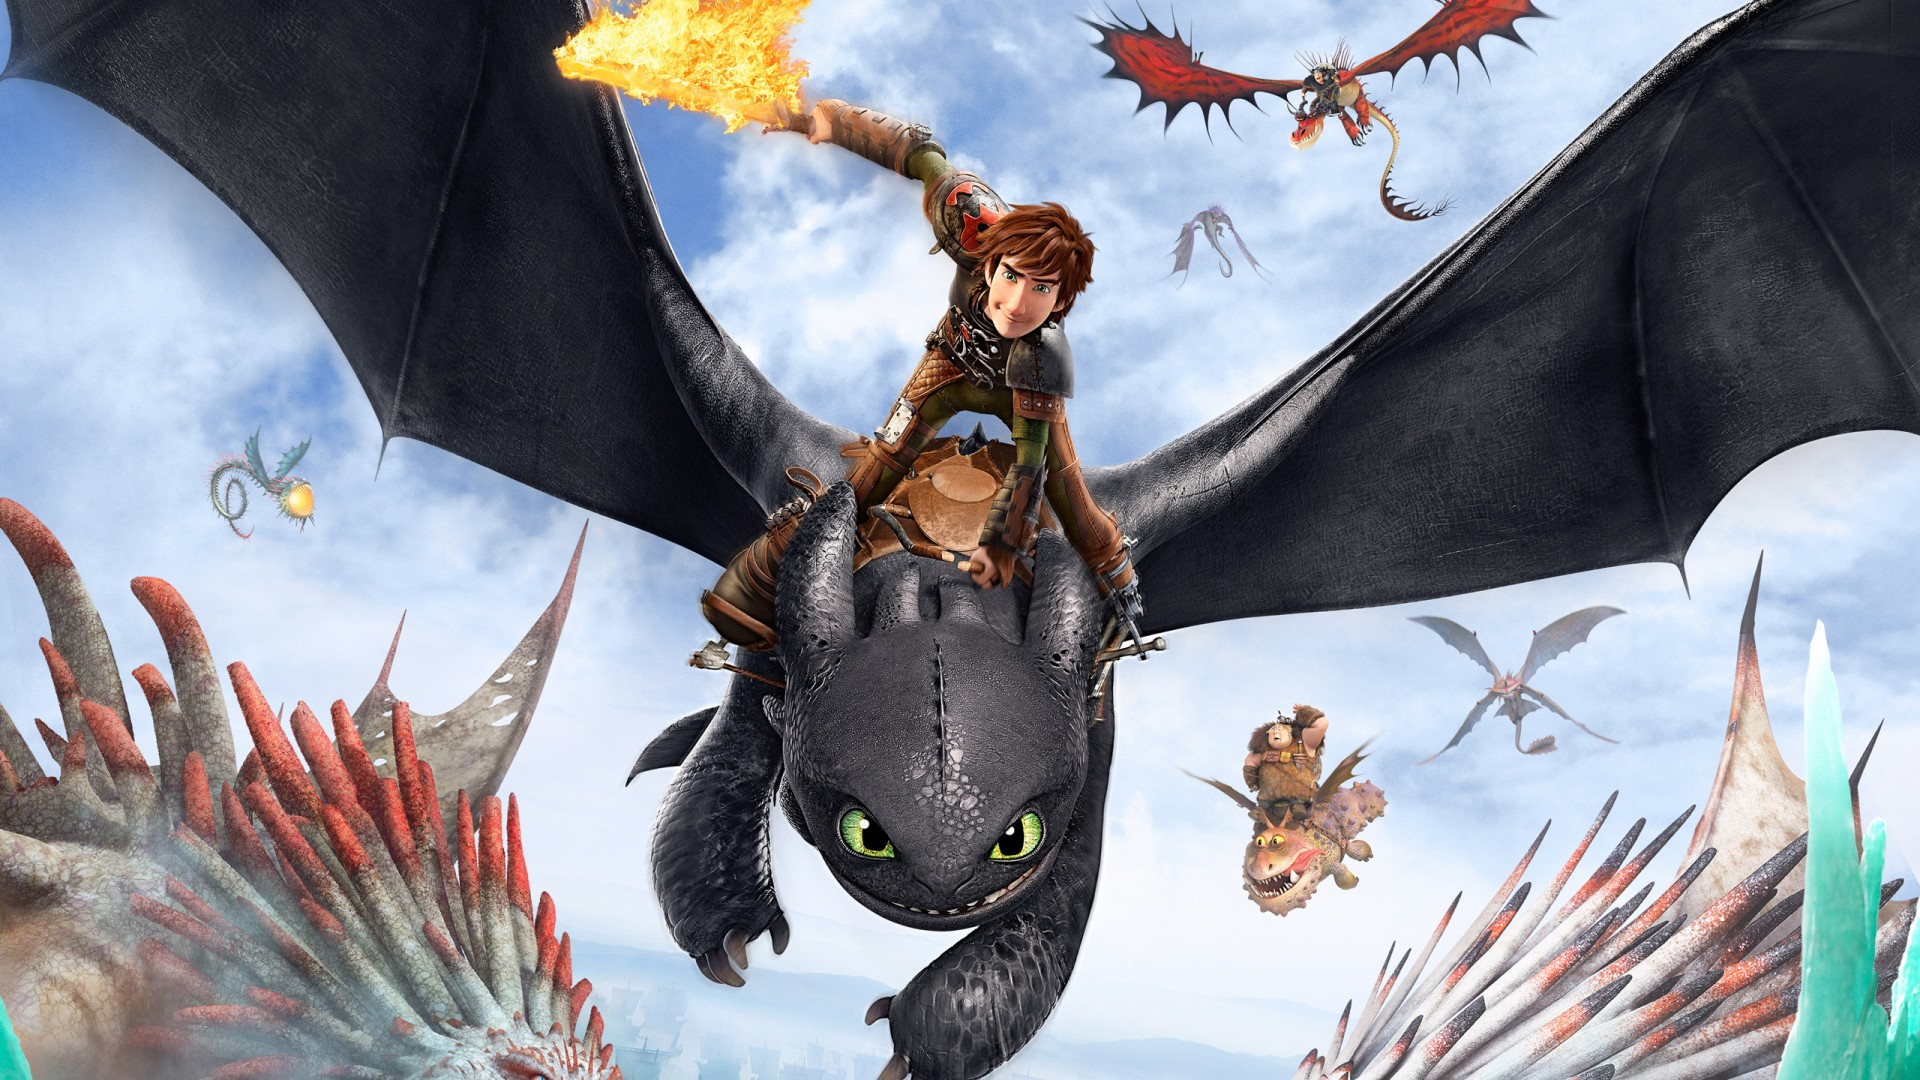 Download Wallpapers Cars Hd How To Train Your Dragon 2 Poster Wallpapers Hd